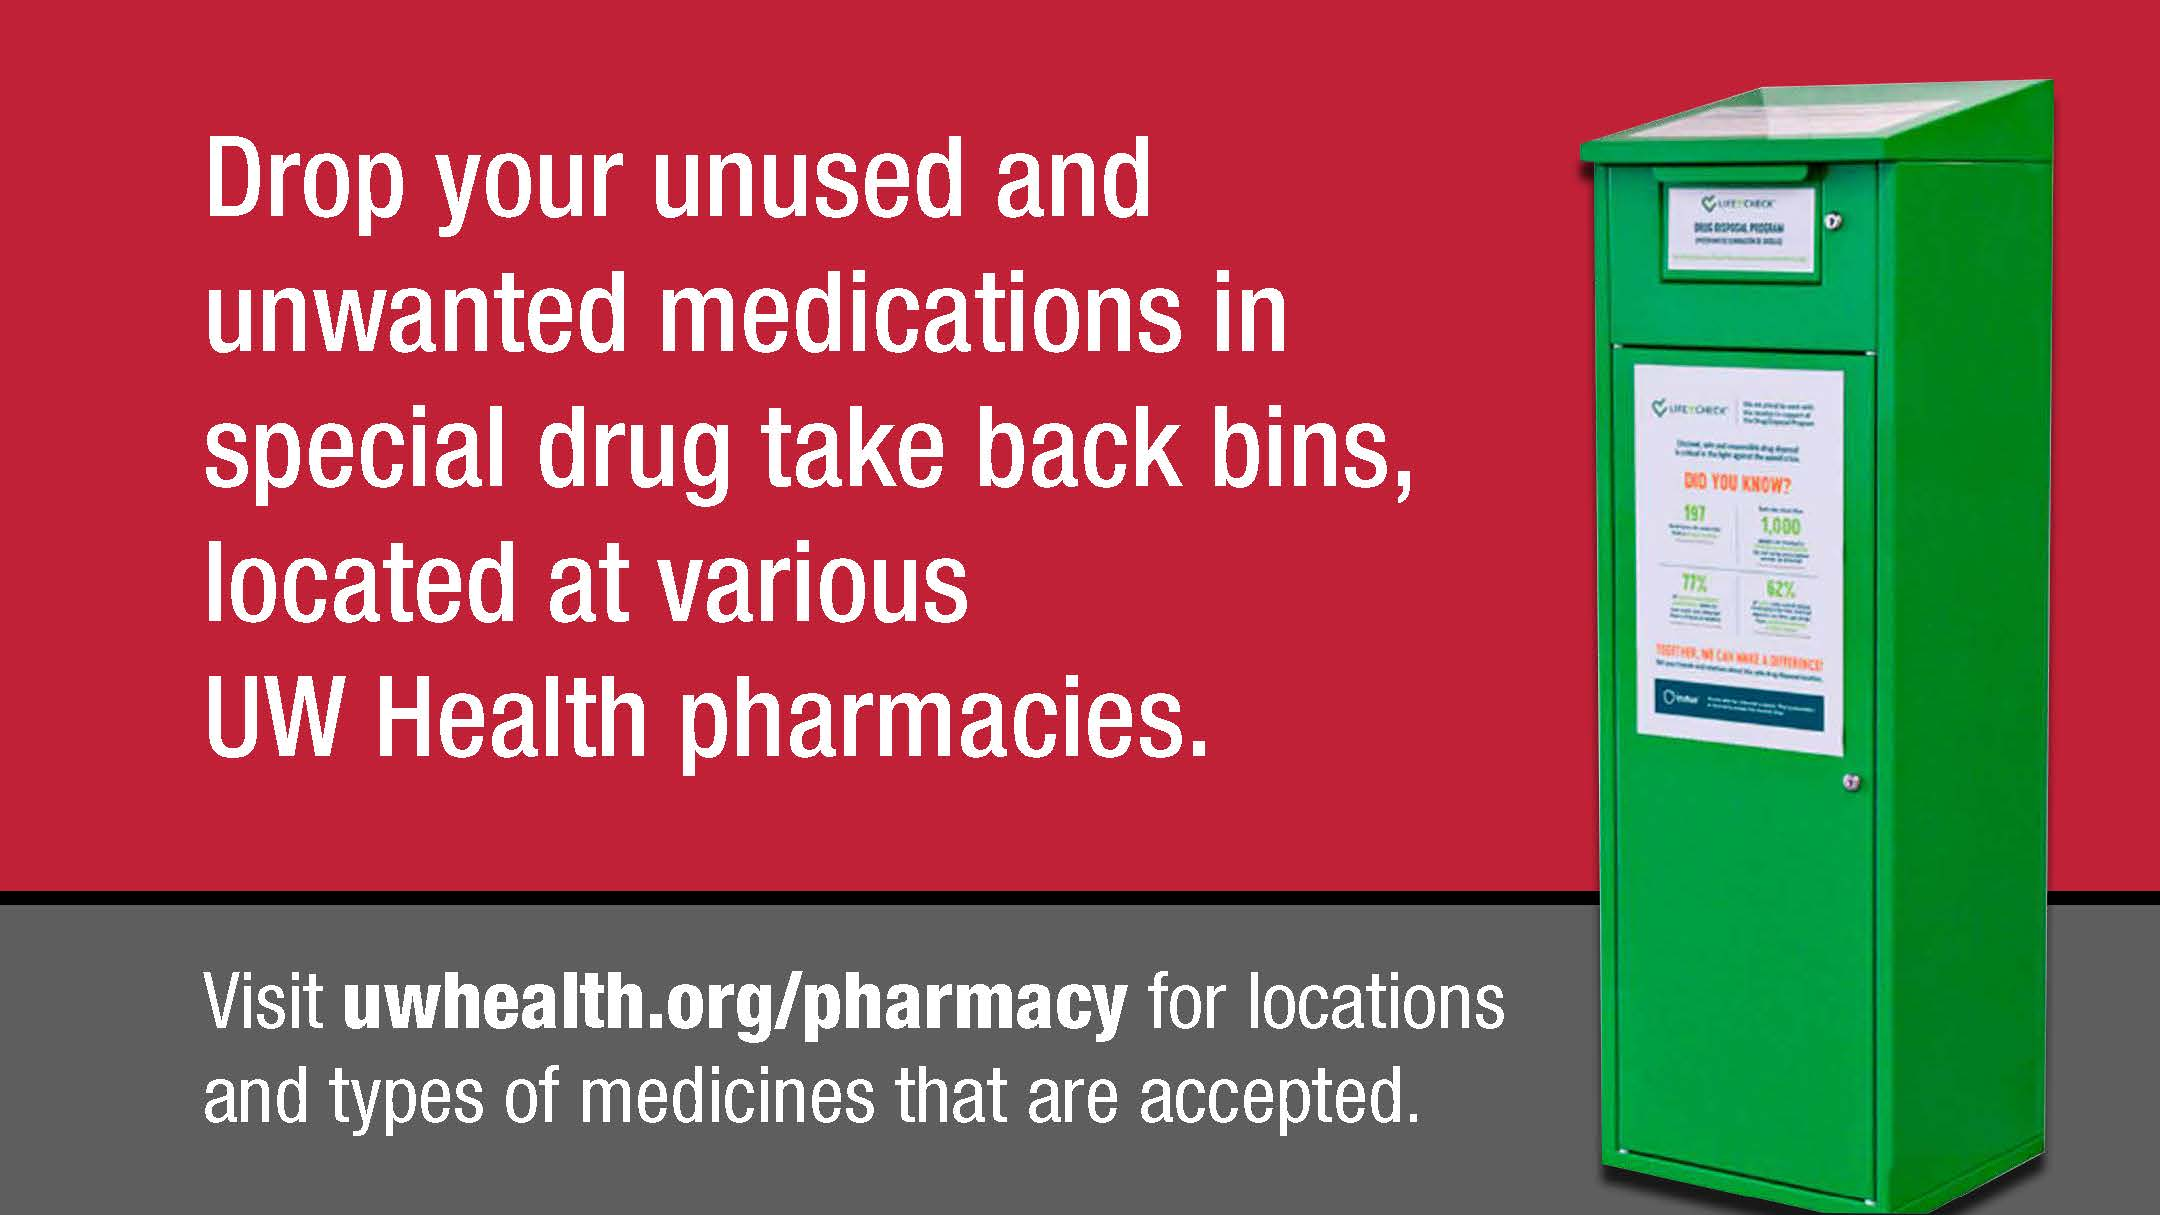 pills; proper medication disposal; UW Health Pharmacy Services; Madison, Wisconsin